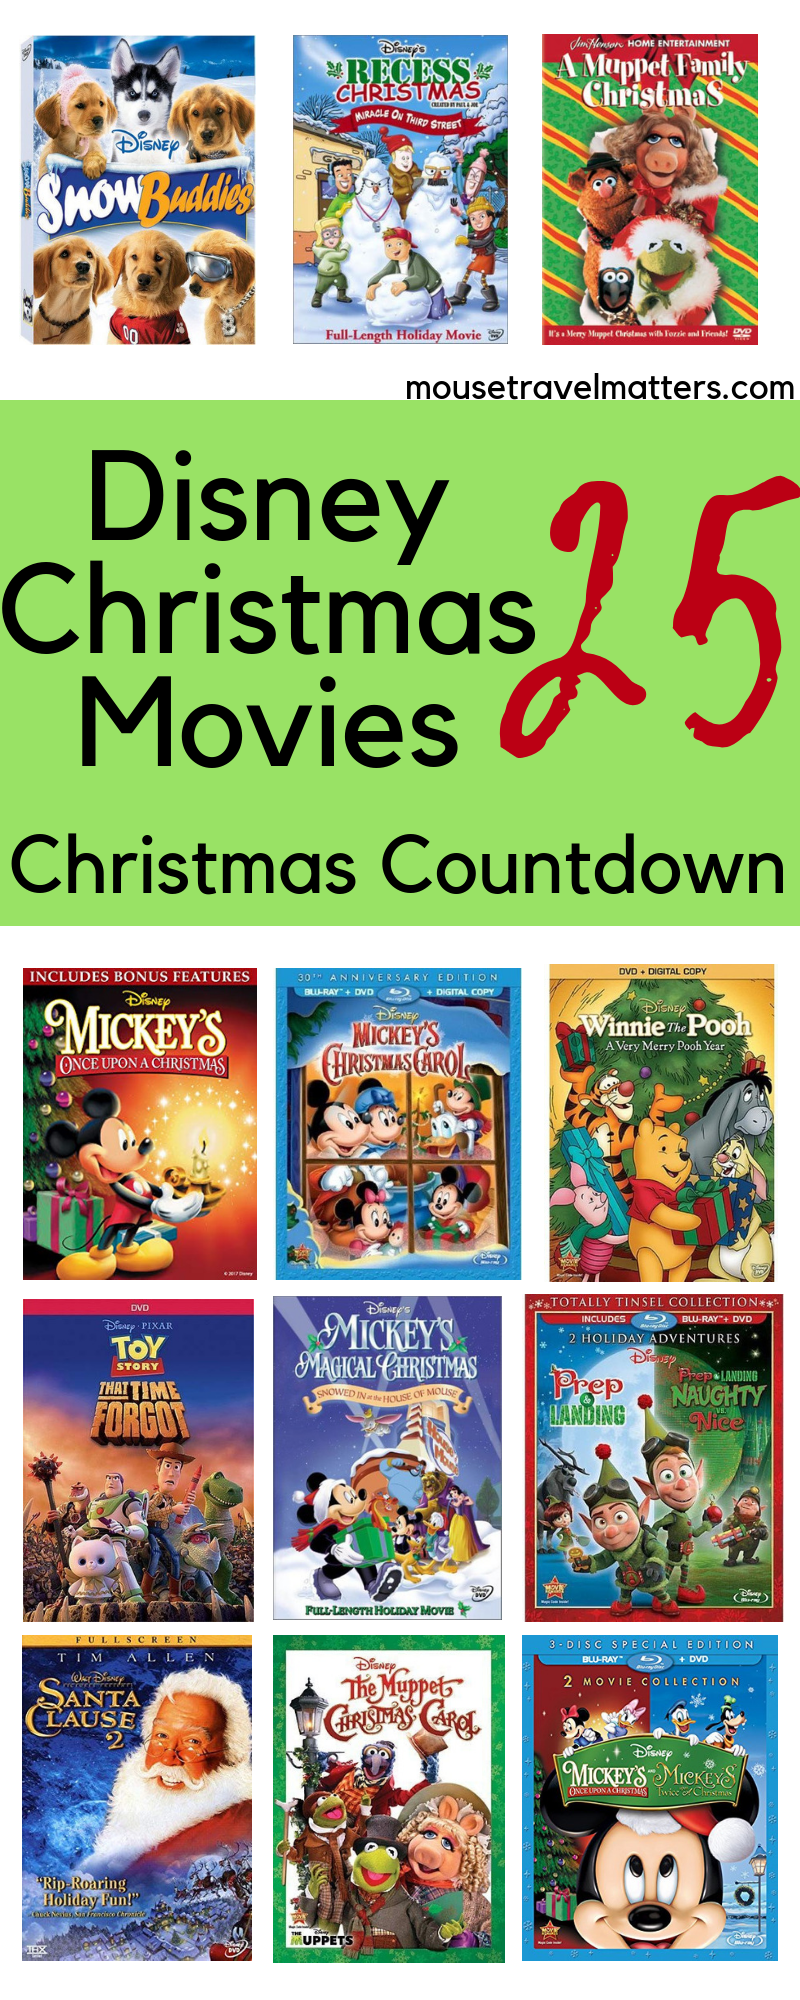 Disney S 25 Best Christmas Movies To Countdown The Holidays Mouse Travel Matters Disney Christmas Movies Disney Christmas Best Christmas Movies